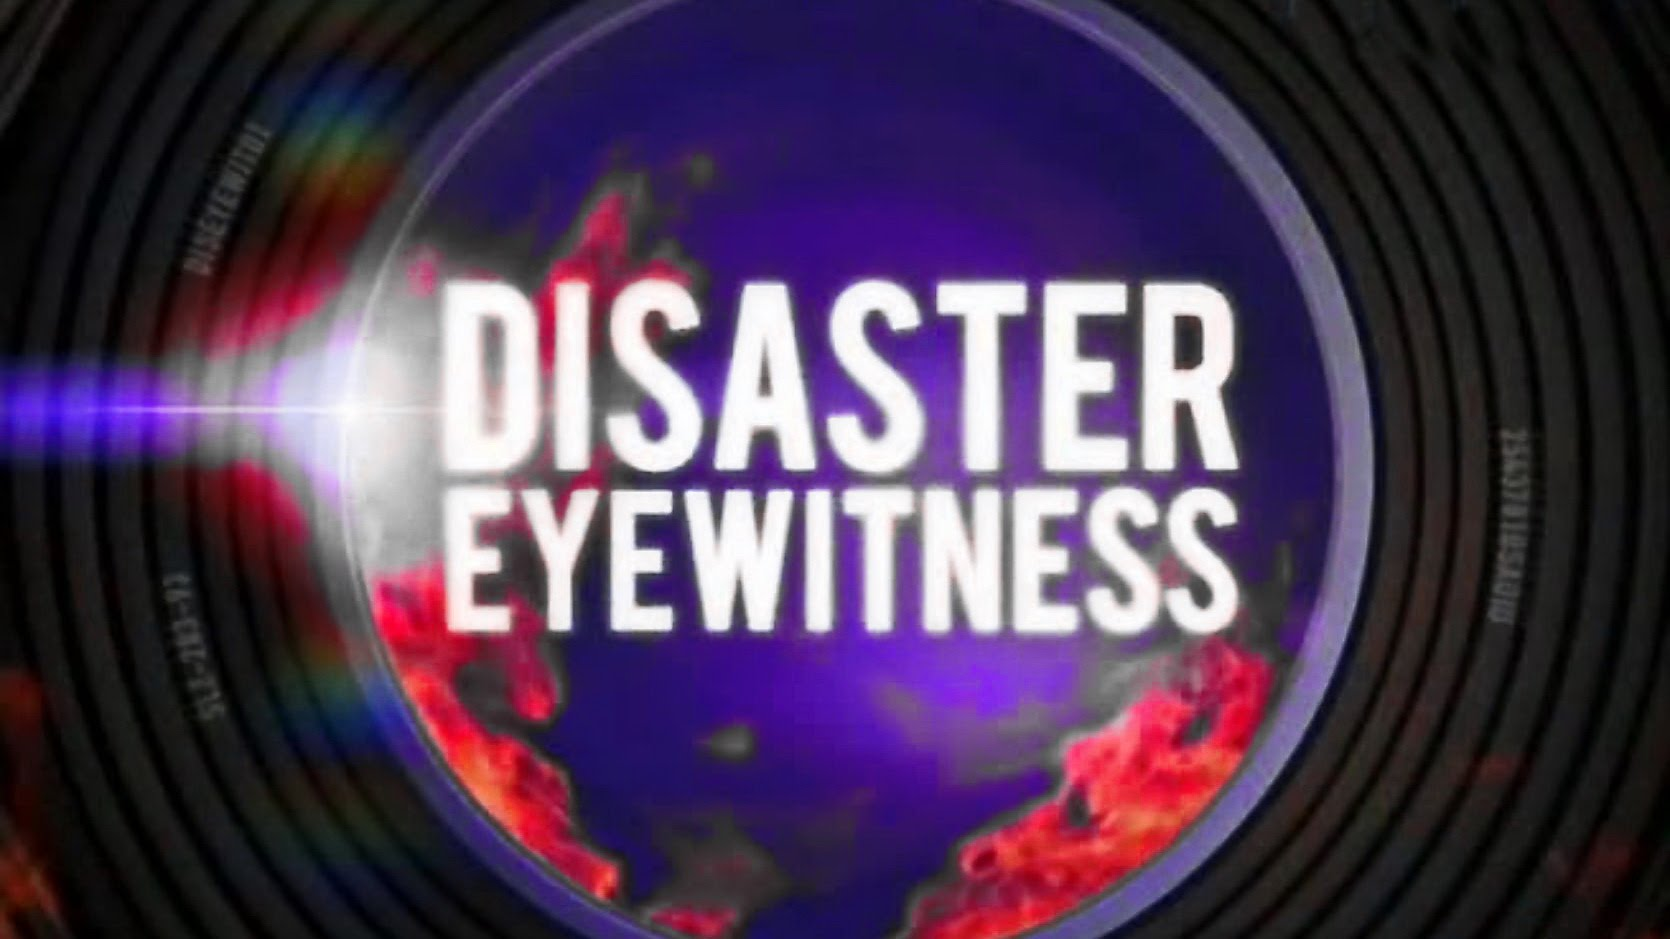 Очевидцы катастроф 7 / Disaster Eyewitness (2009)